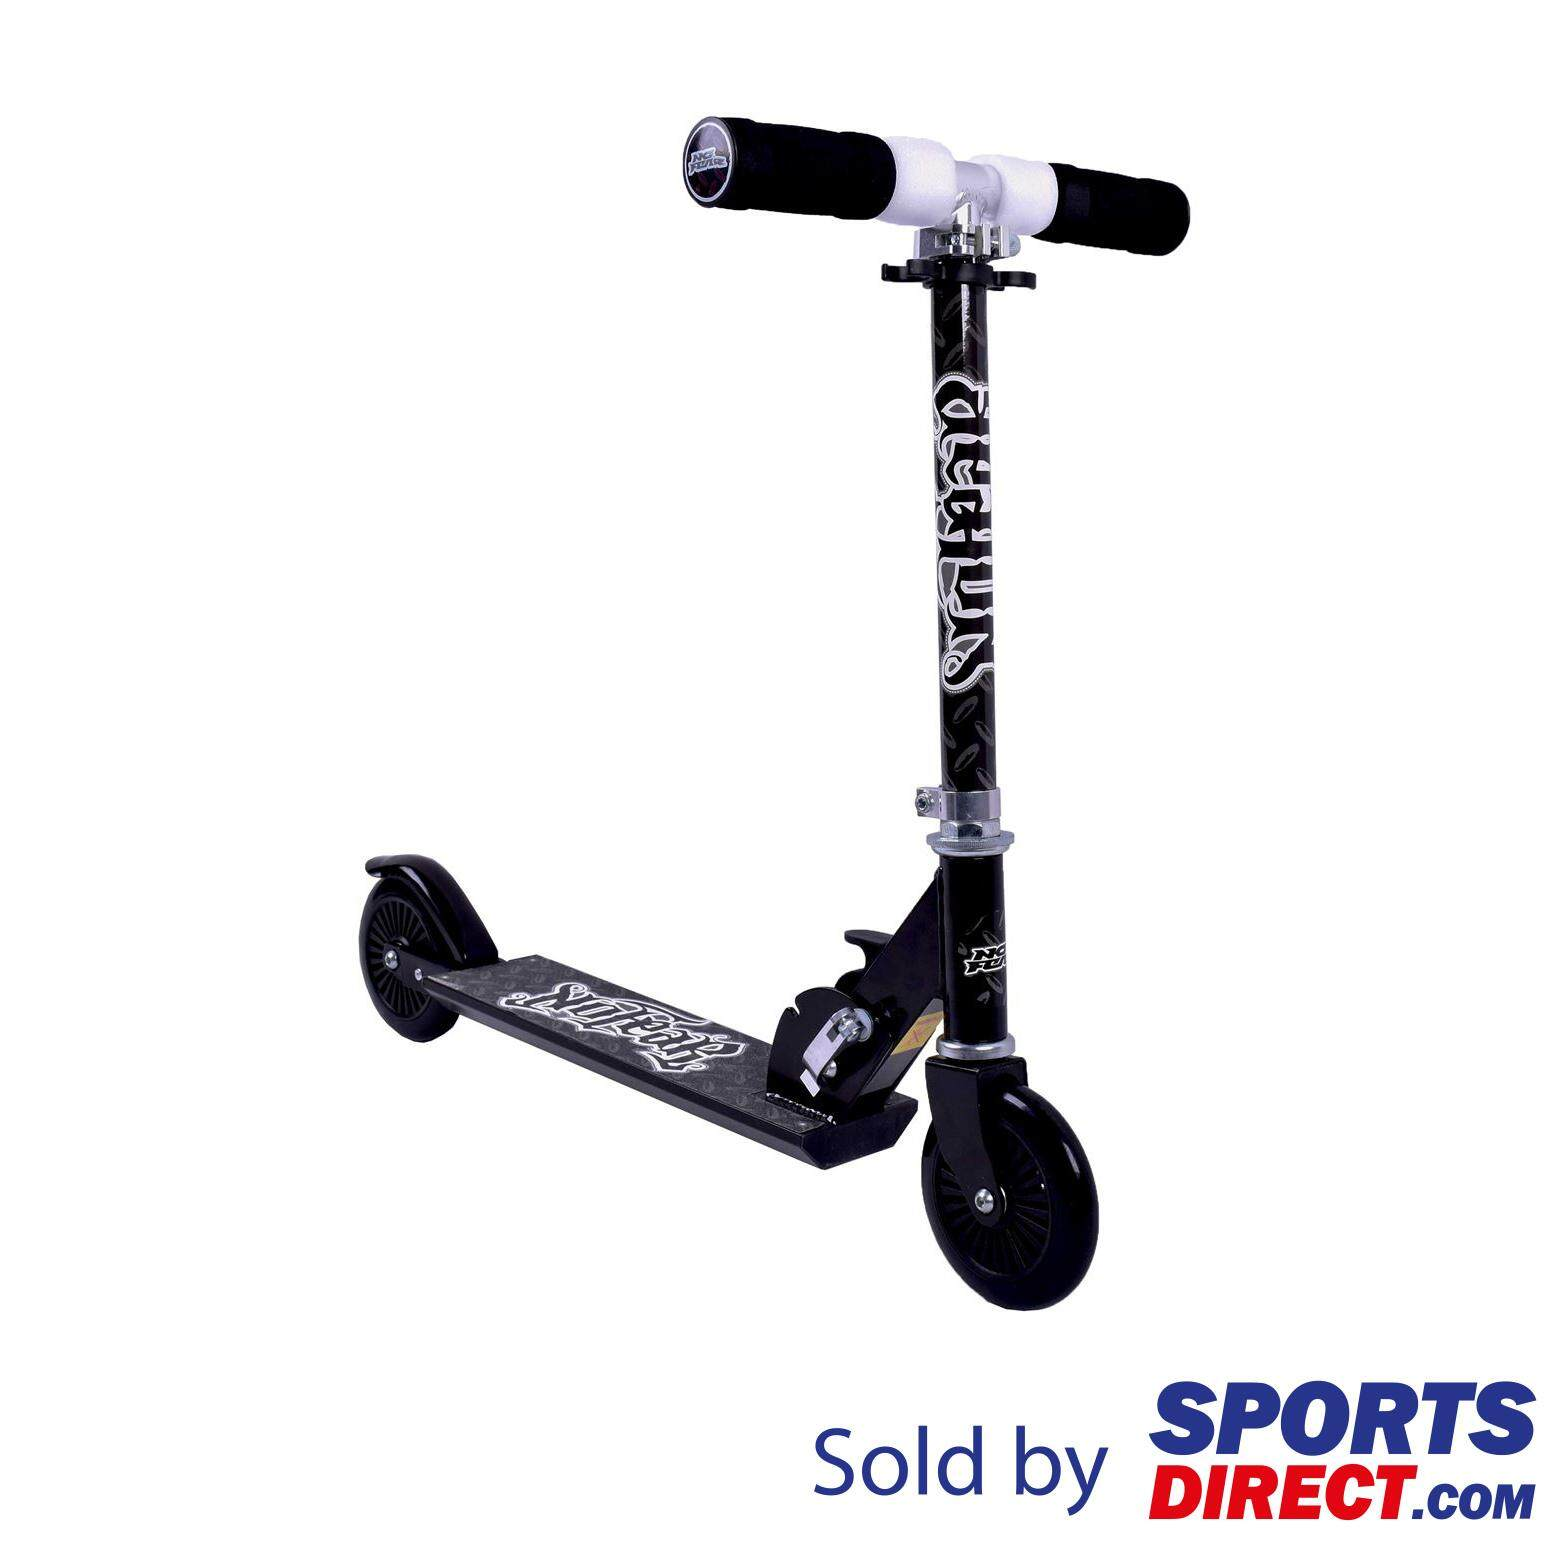 No Fear Kids Scooter (blk) By Sports Direct Mst Sdn Bhd.